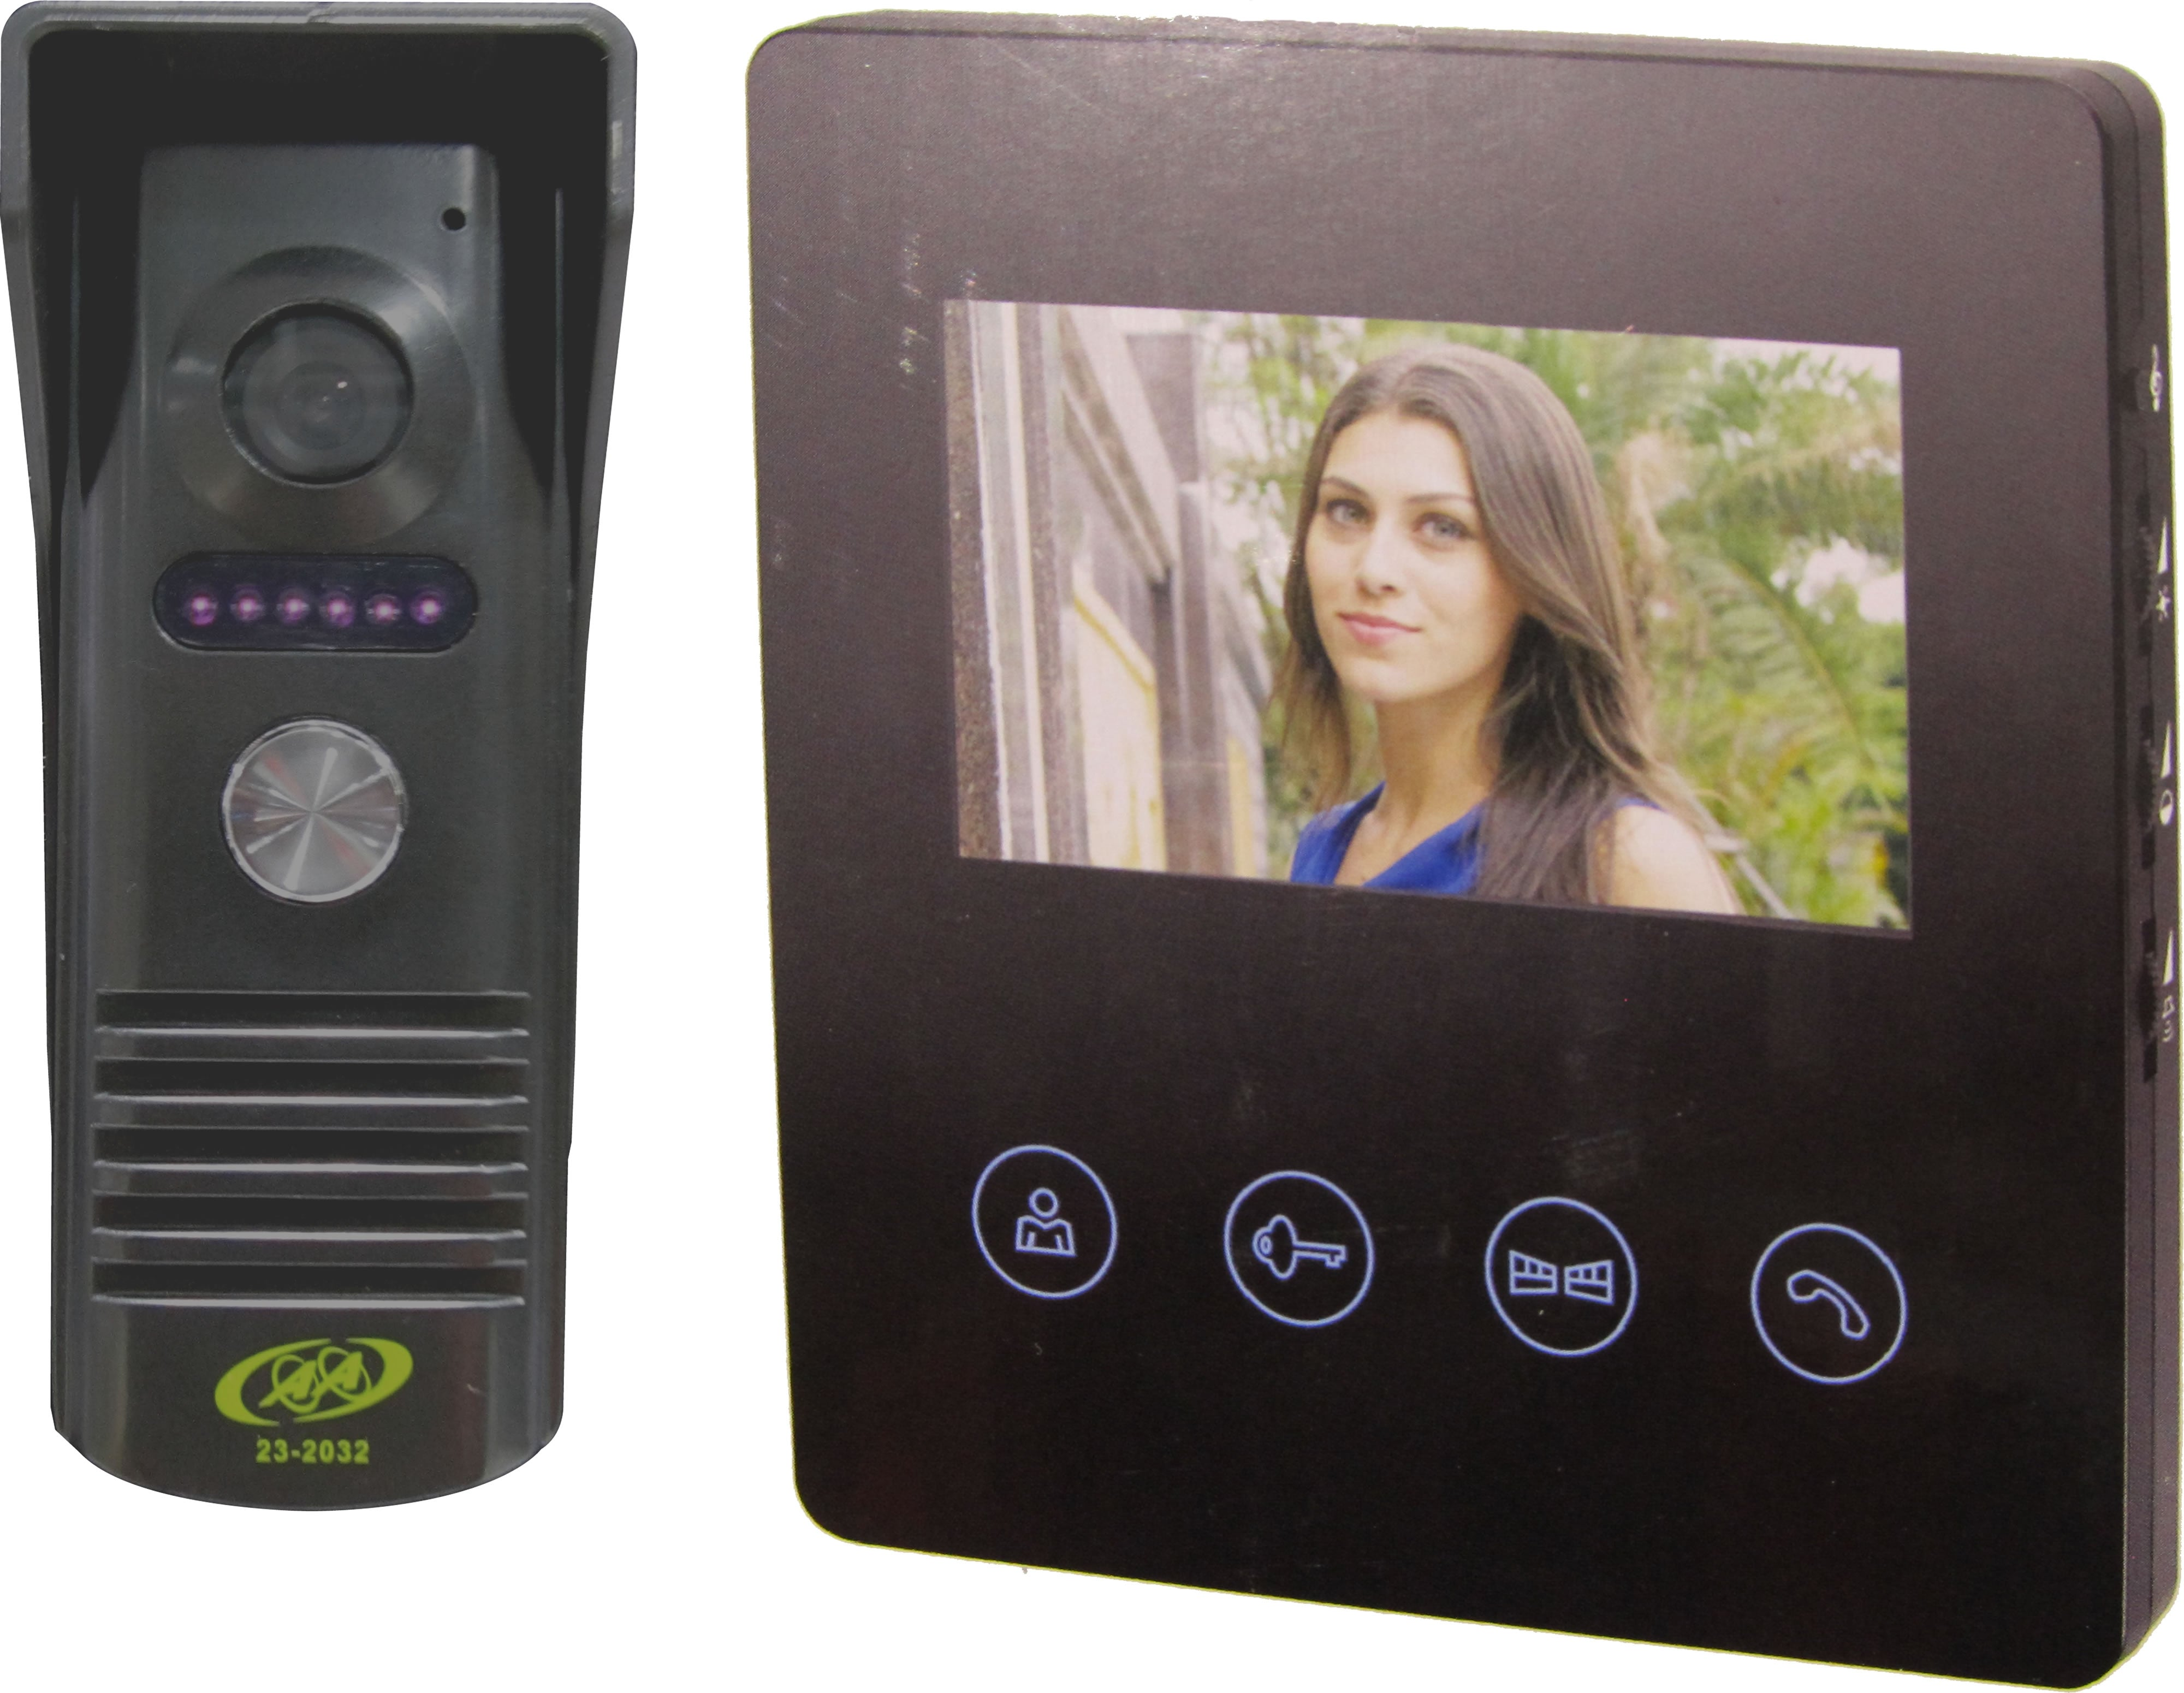 23-2034 Video Doorphone with 4.3 Inches Screen